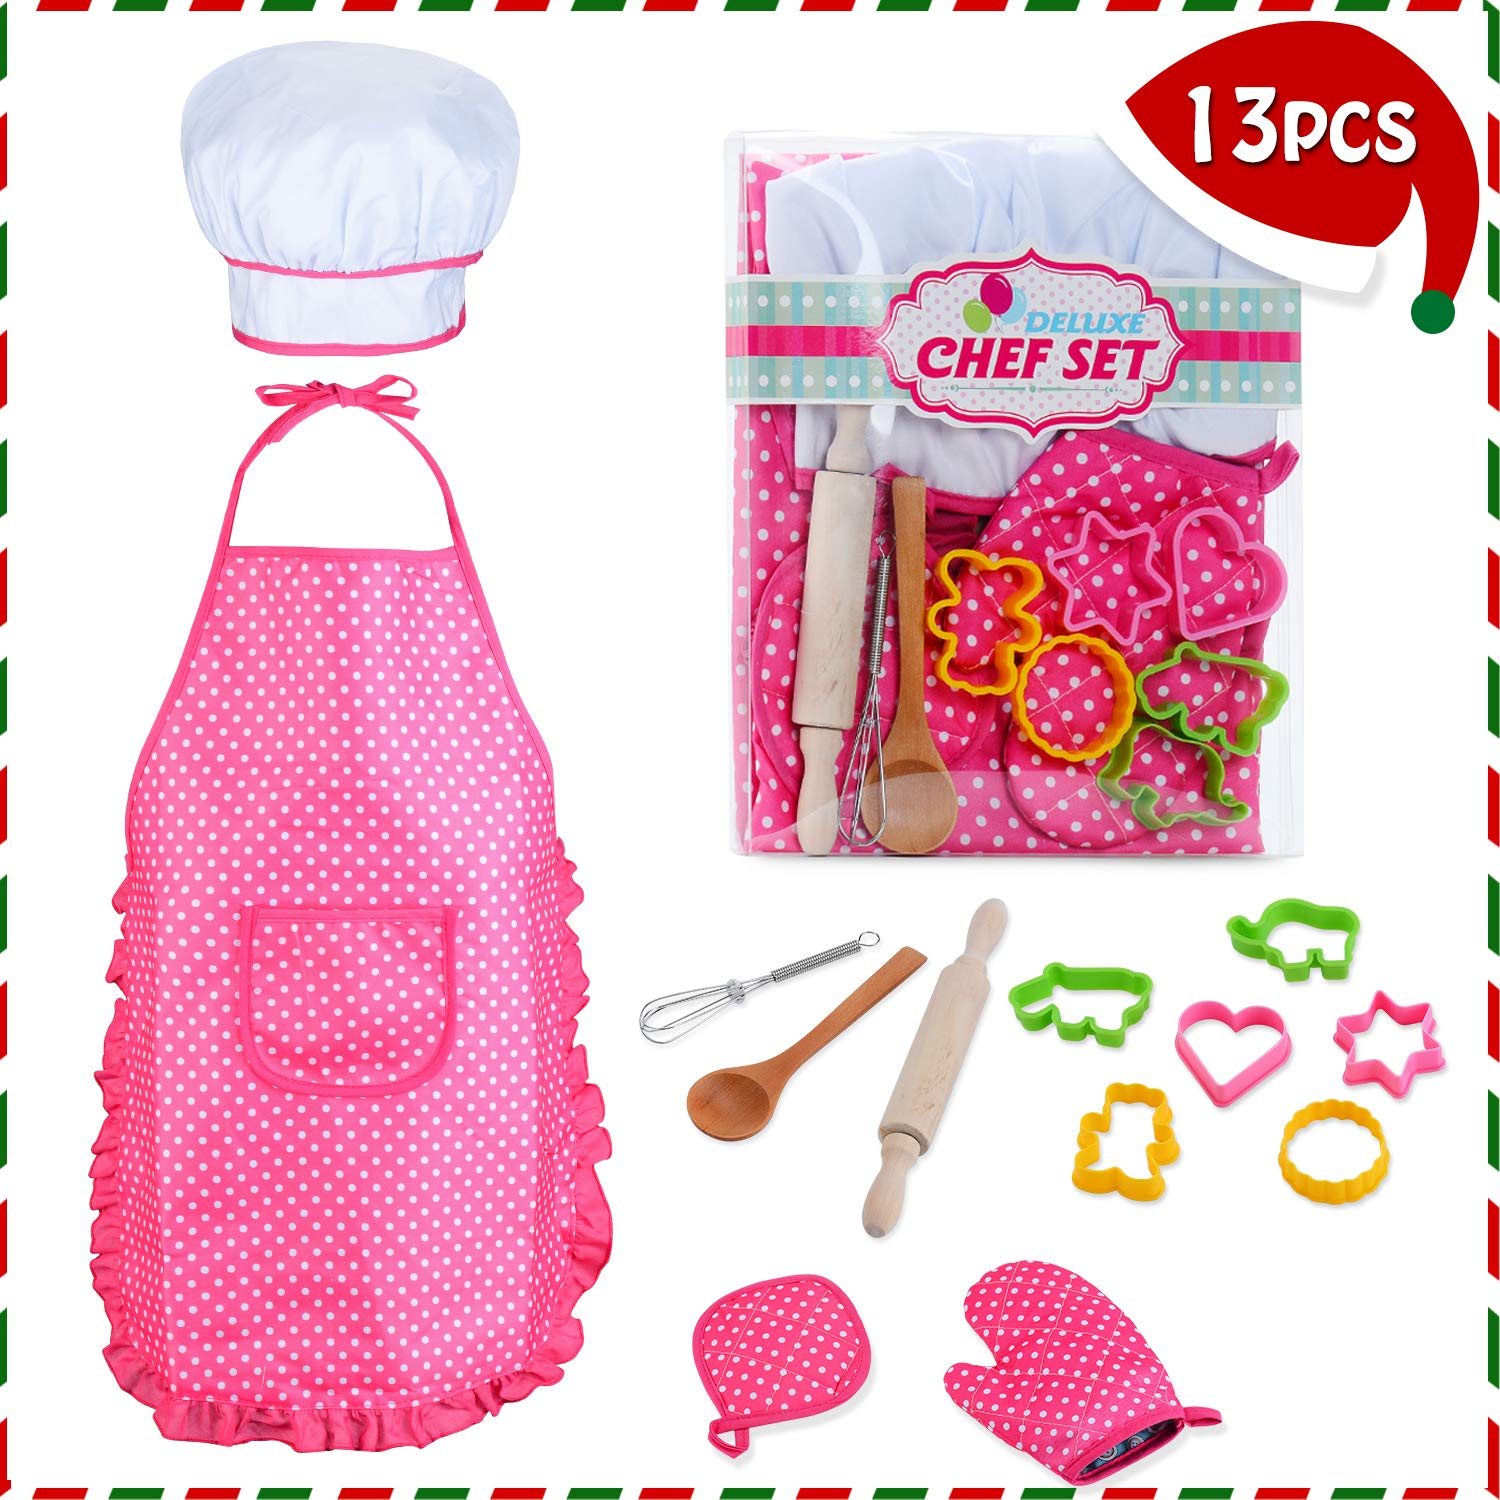 HmiL-U Chef Set for Kids - 13 Pcs Kids Cooking and Baking Set Includes Kids Apron, Chef Hat, Utensils, Cooking Mitt for Kids Chef Role Play Set , Gift for 3 Year Old Girls and up by HmiL-U